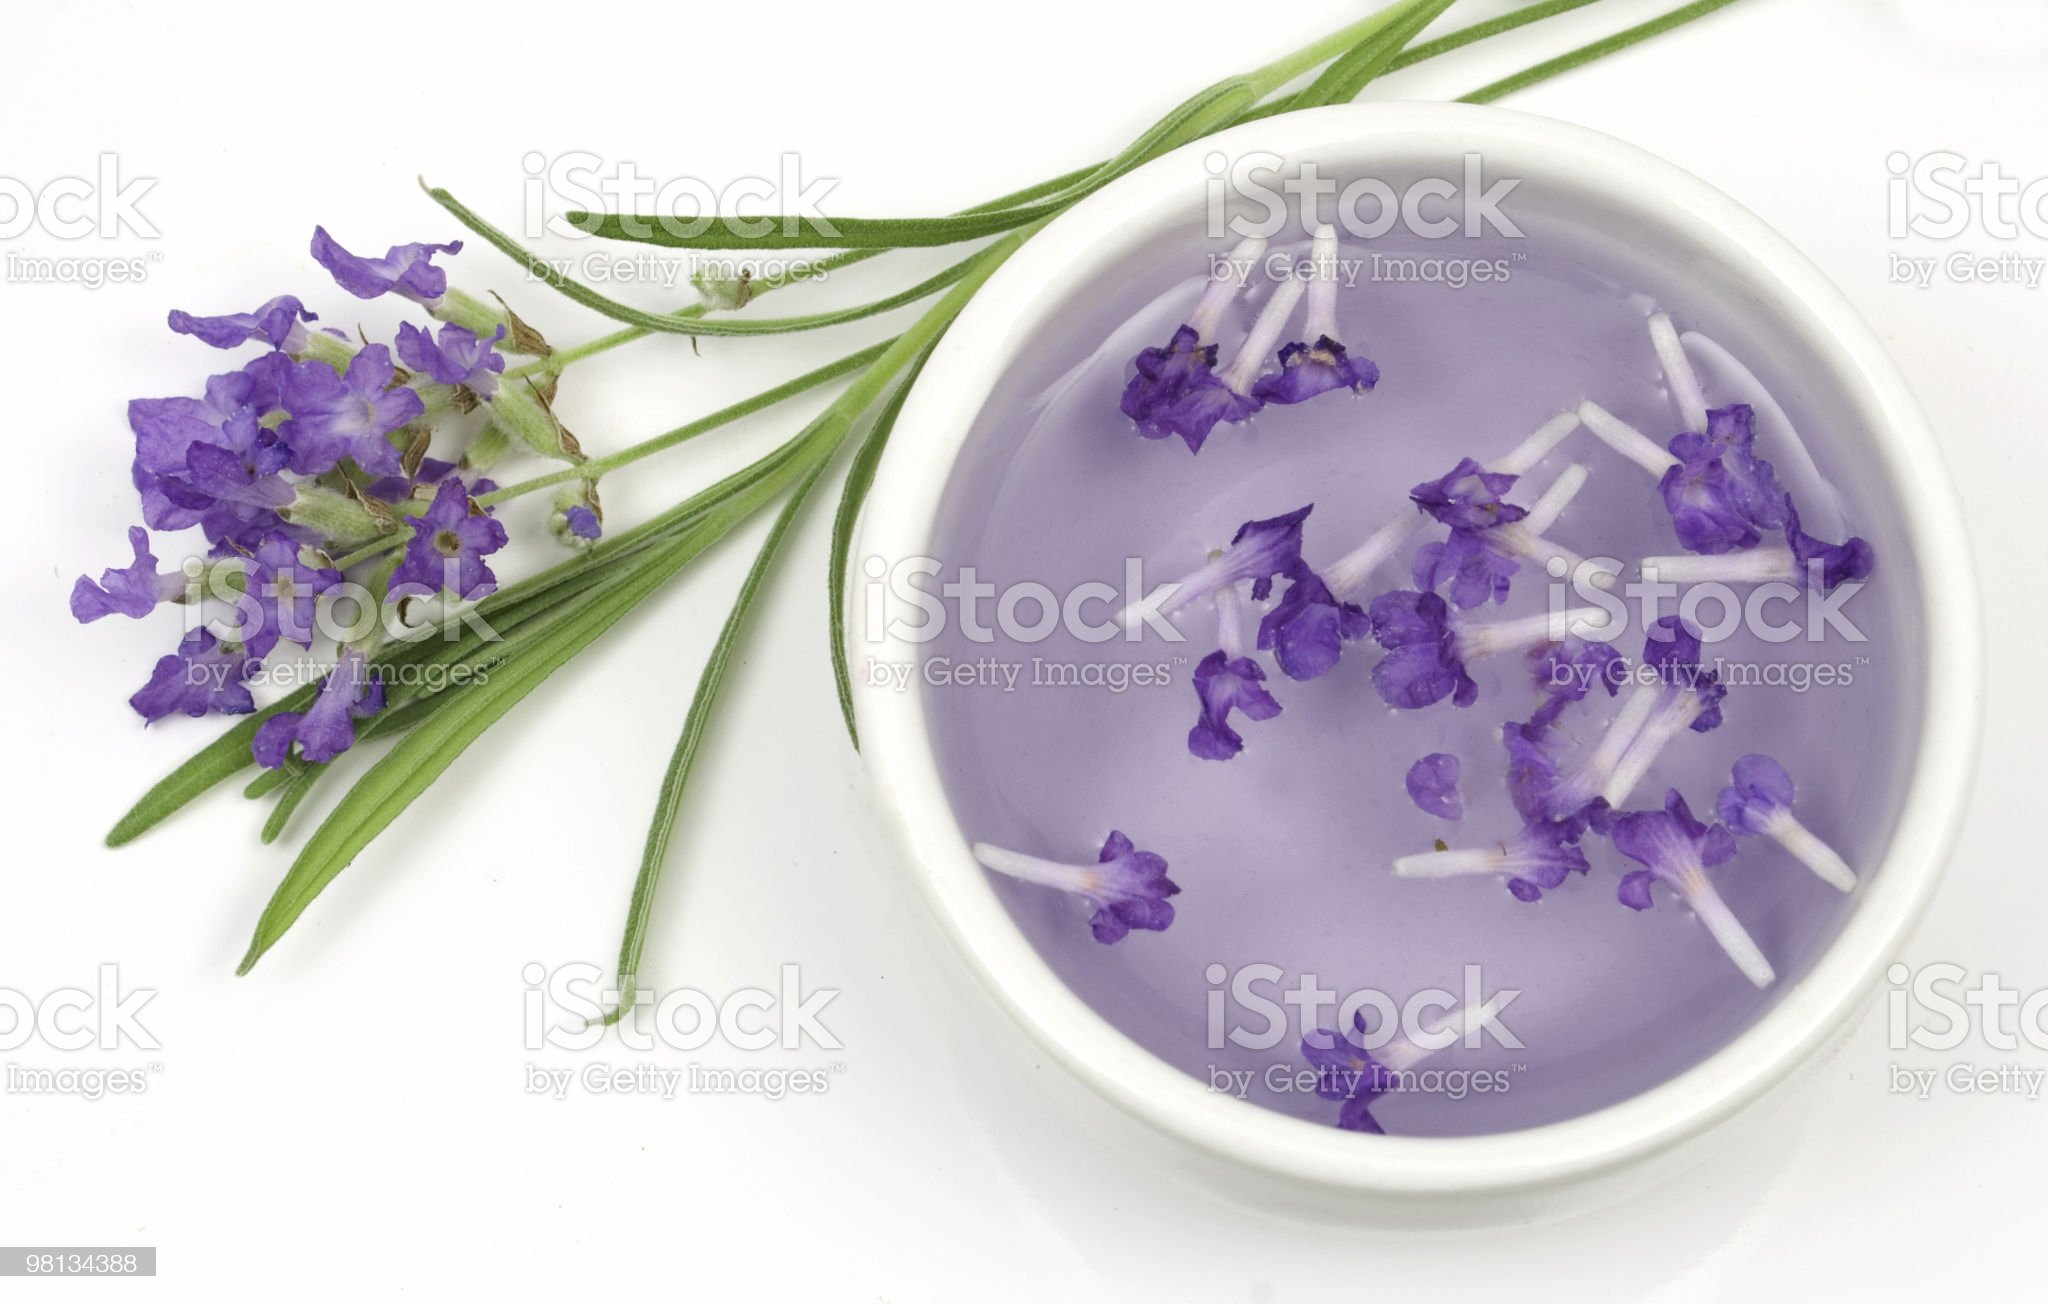 Lavender flower and extract royalty-free stock photo